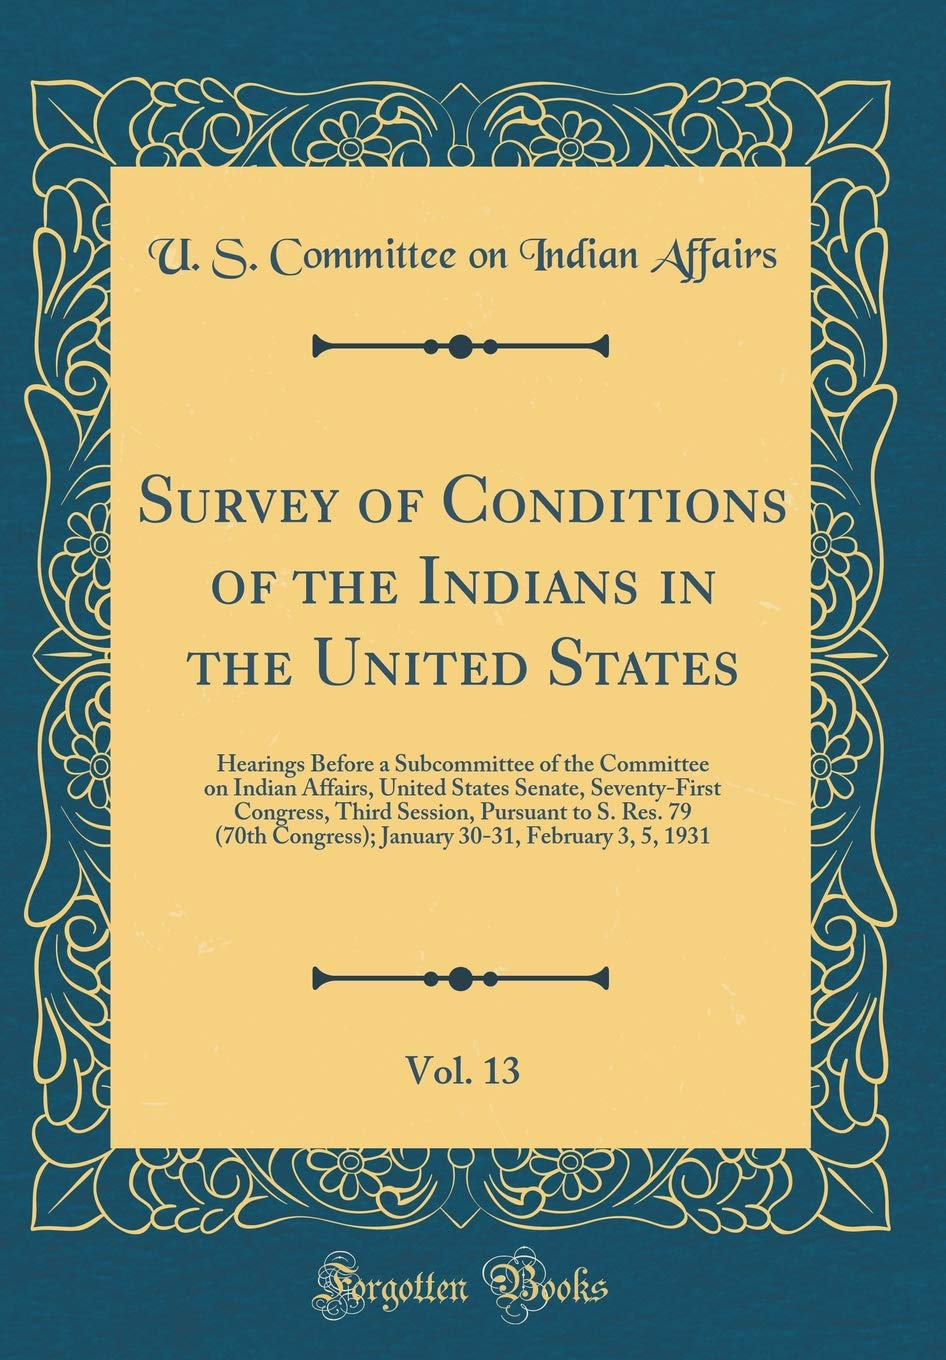 Download Survey of Conditions of the Indians in the United States, Vol. 13: Hearings Before a Subcommittee of the Committee on Indian Affairs, United States ... Res. 79 (70th Congress); January 30-31, Febru PDF